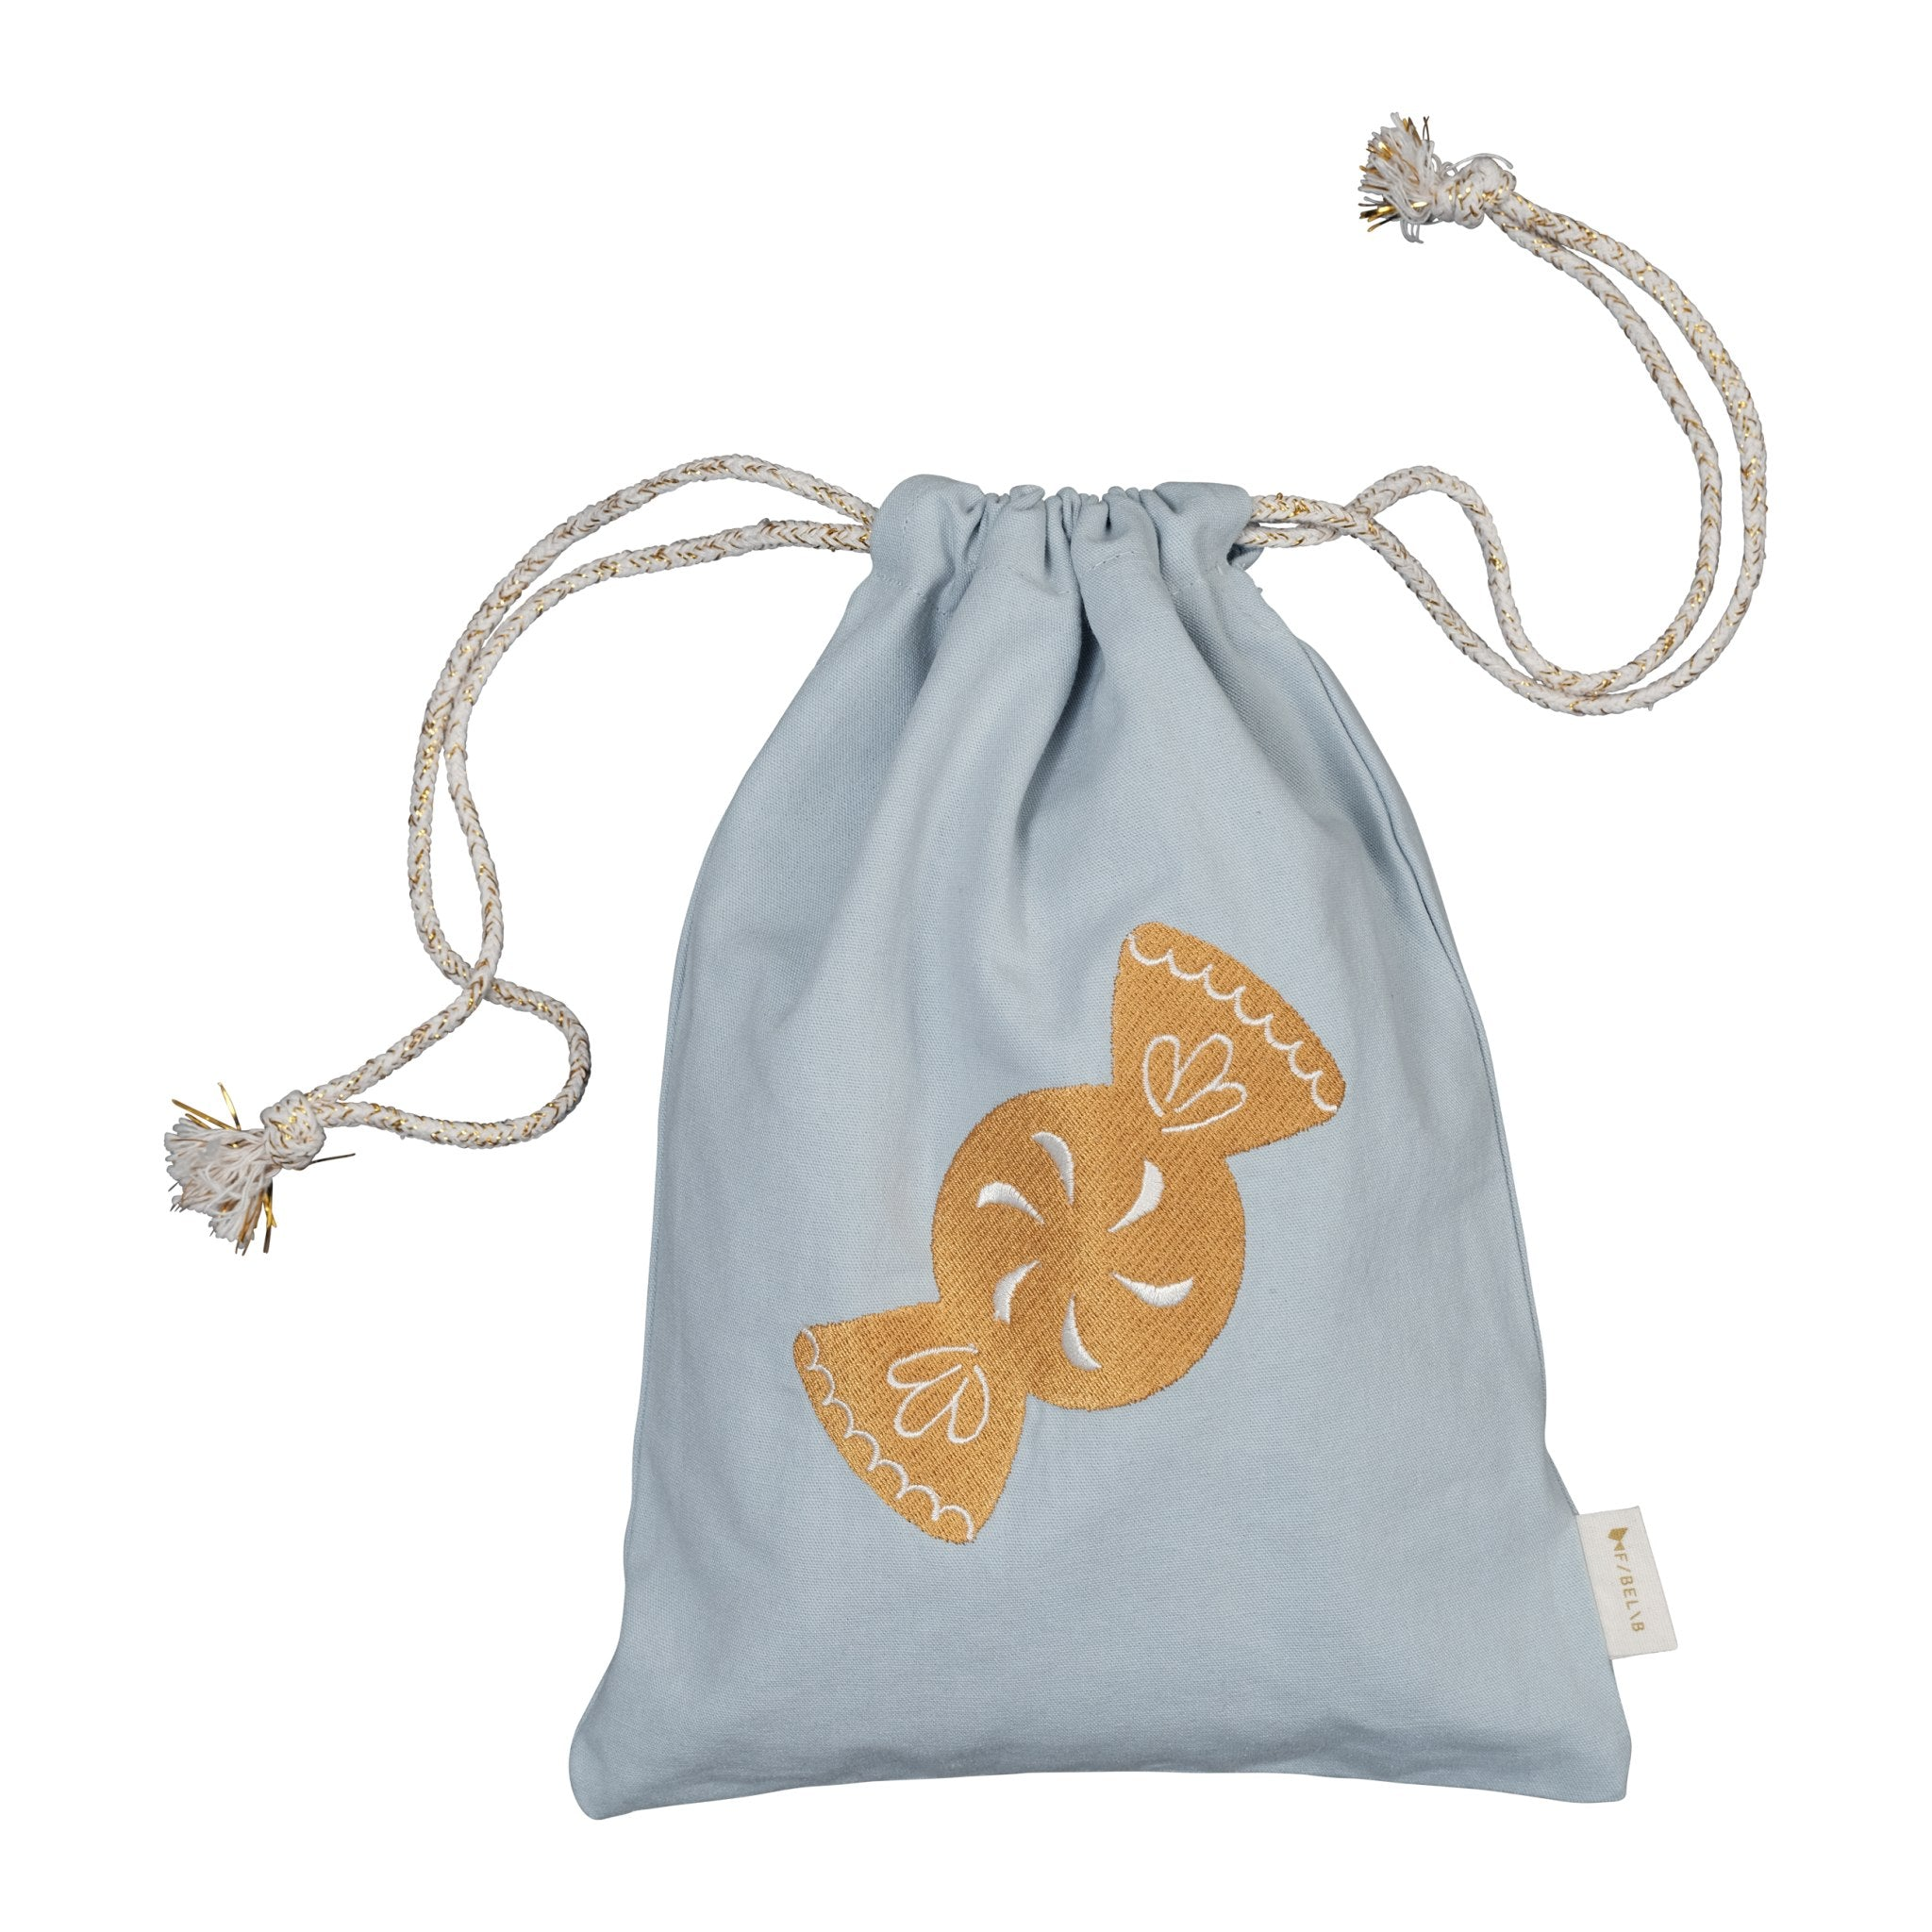 Gift Bag - Candy - Embroidered